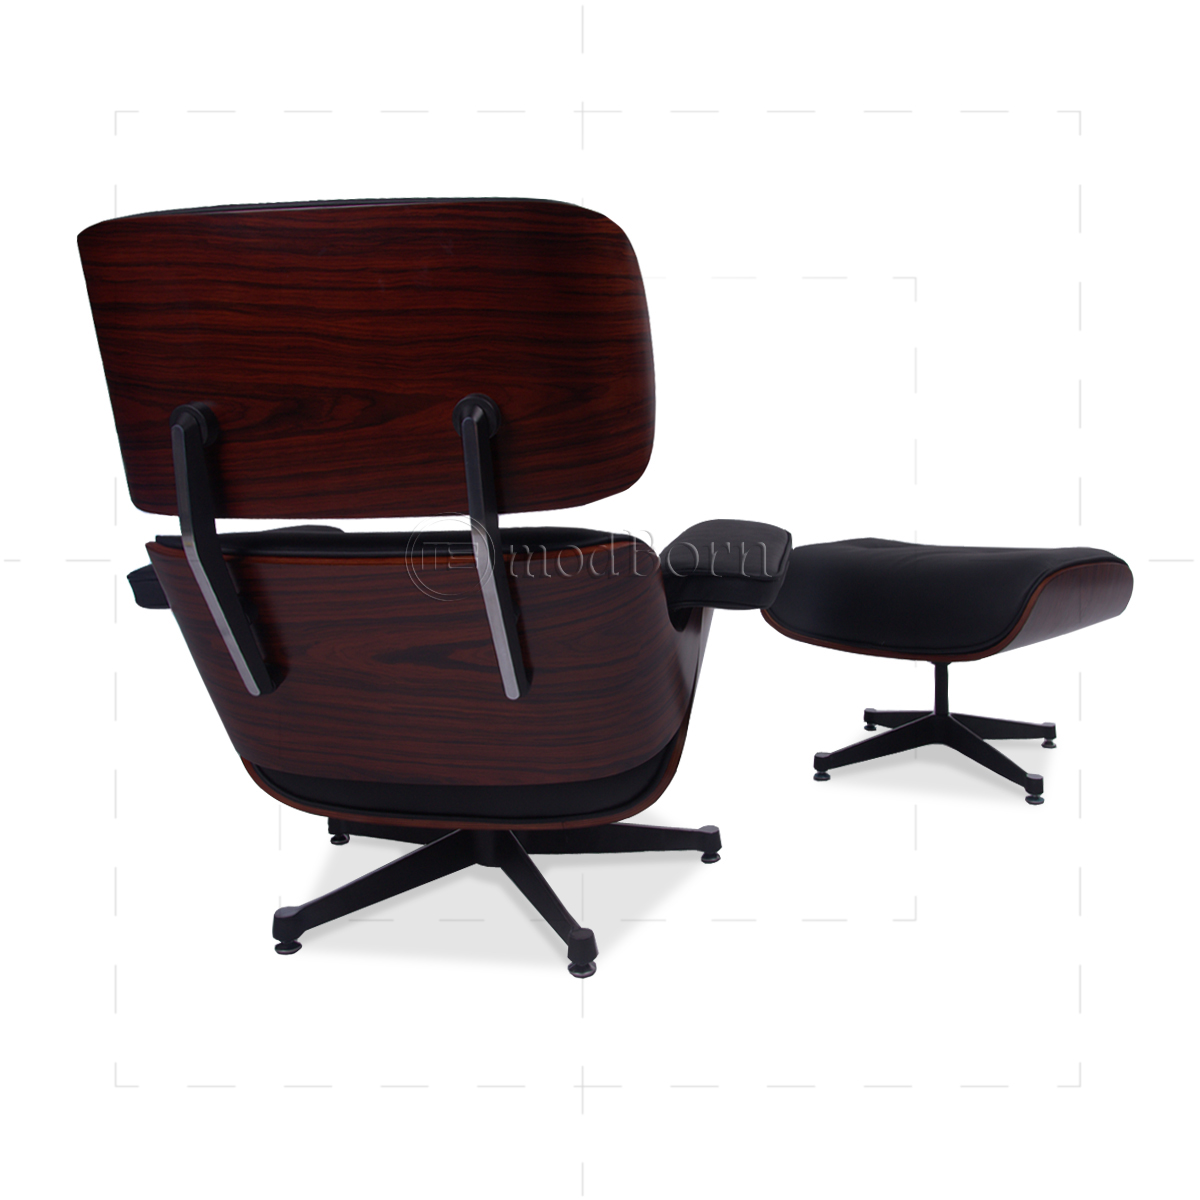 Eames style lounge chair and ottoman black leather for Eames chair replica deutschland